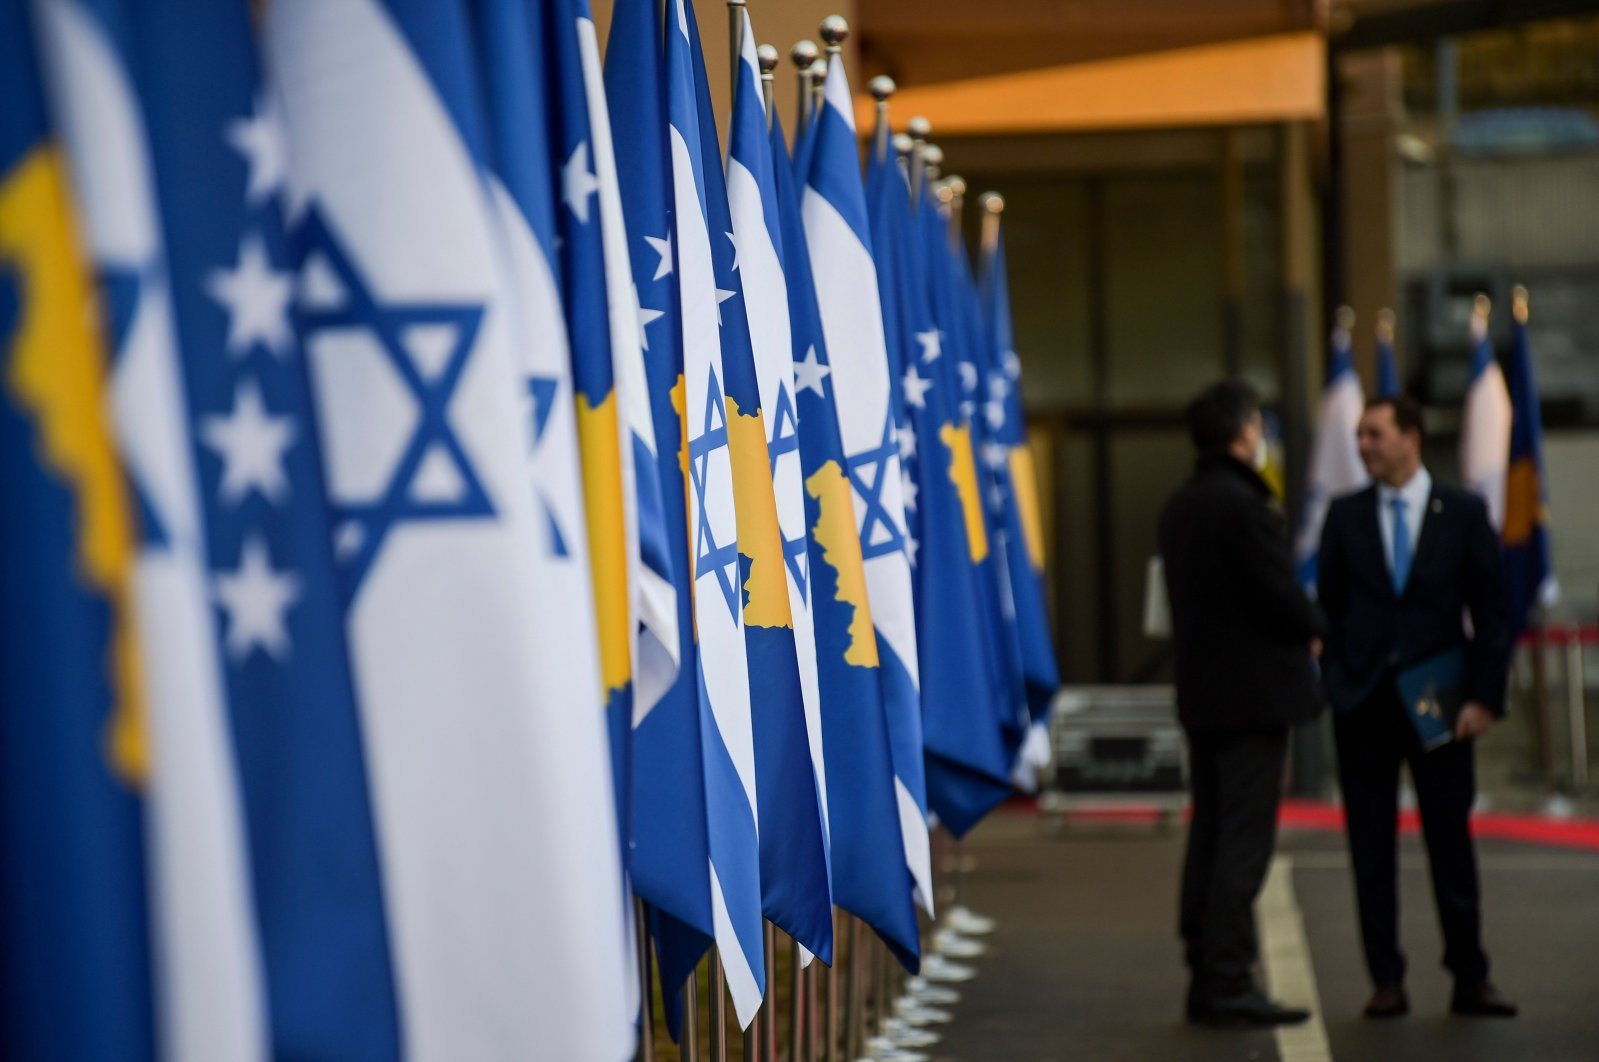 Kosovo's government officials stand in front of the flags of Kosovo and Israel, displayed during a ceremony at the headquarters of the Foreign Ministry in Pristina, Kosovo, Feb. 1, 2021. (AFP Photo)